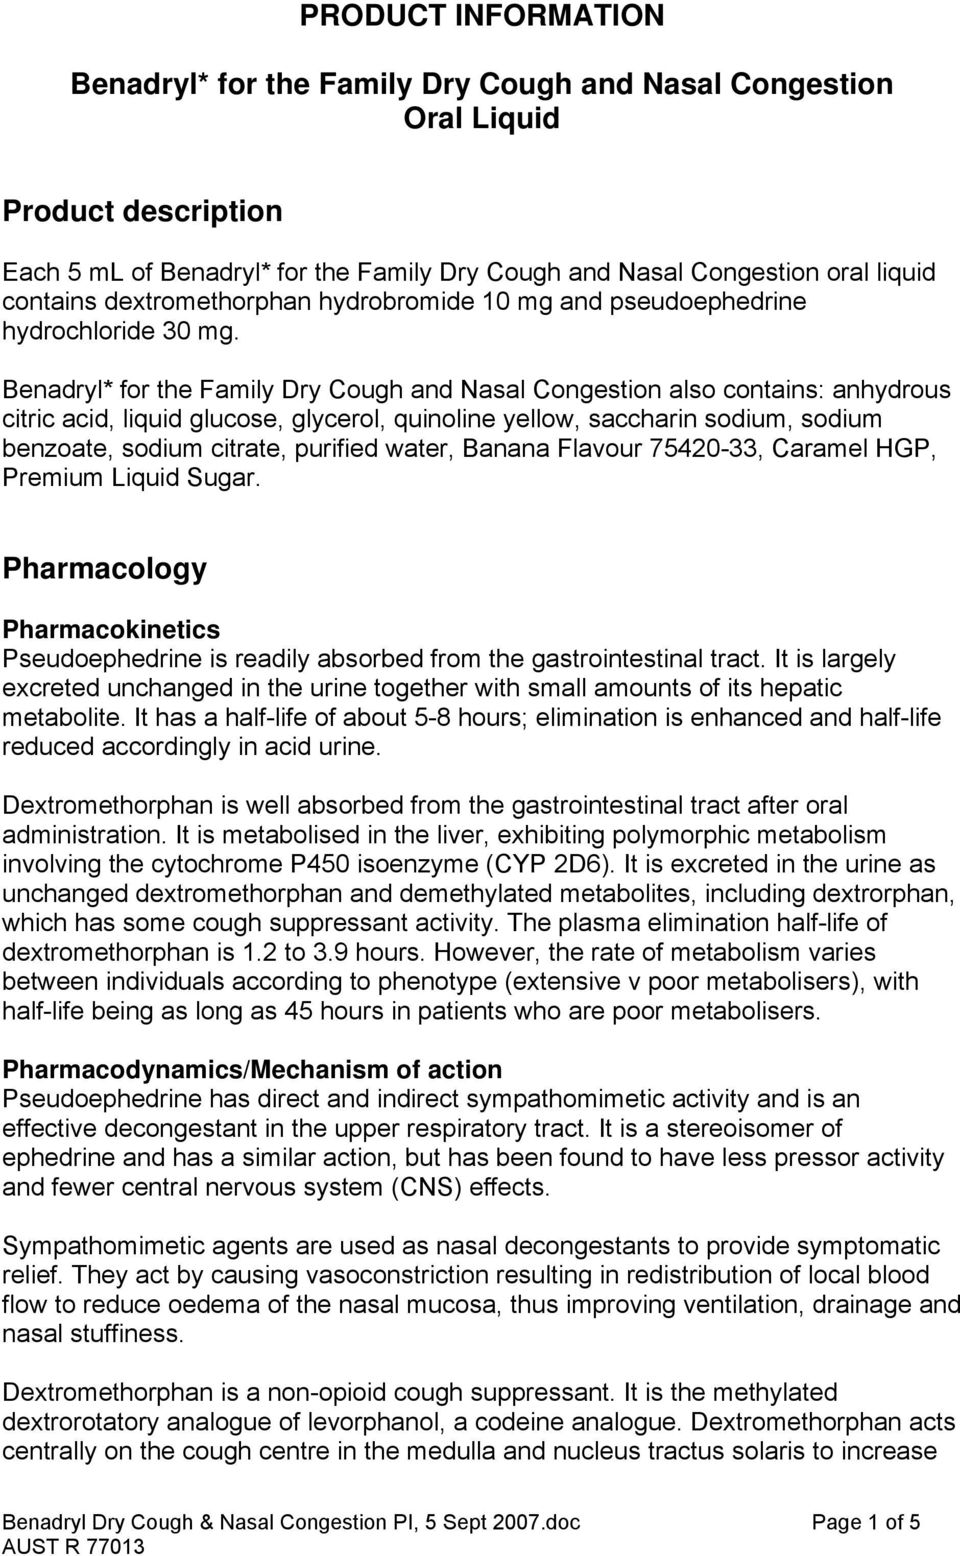 PRODUCT INFORMATION  Benadryl* for the Family Dry Cough and